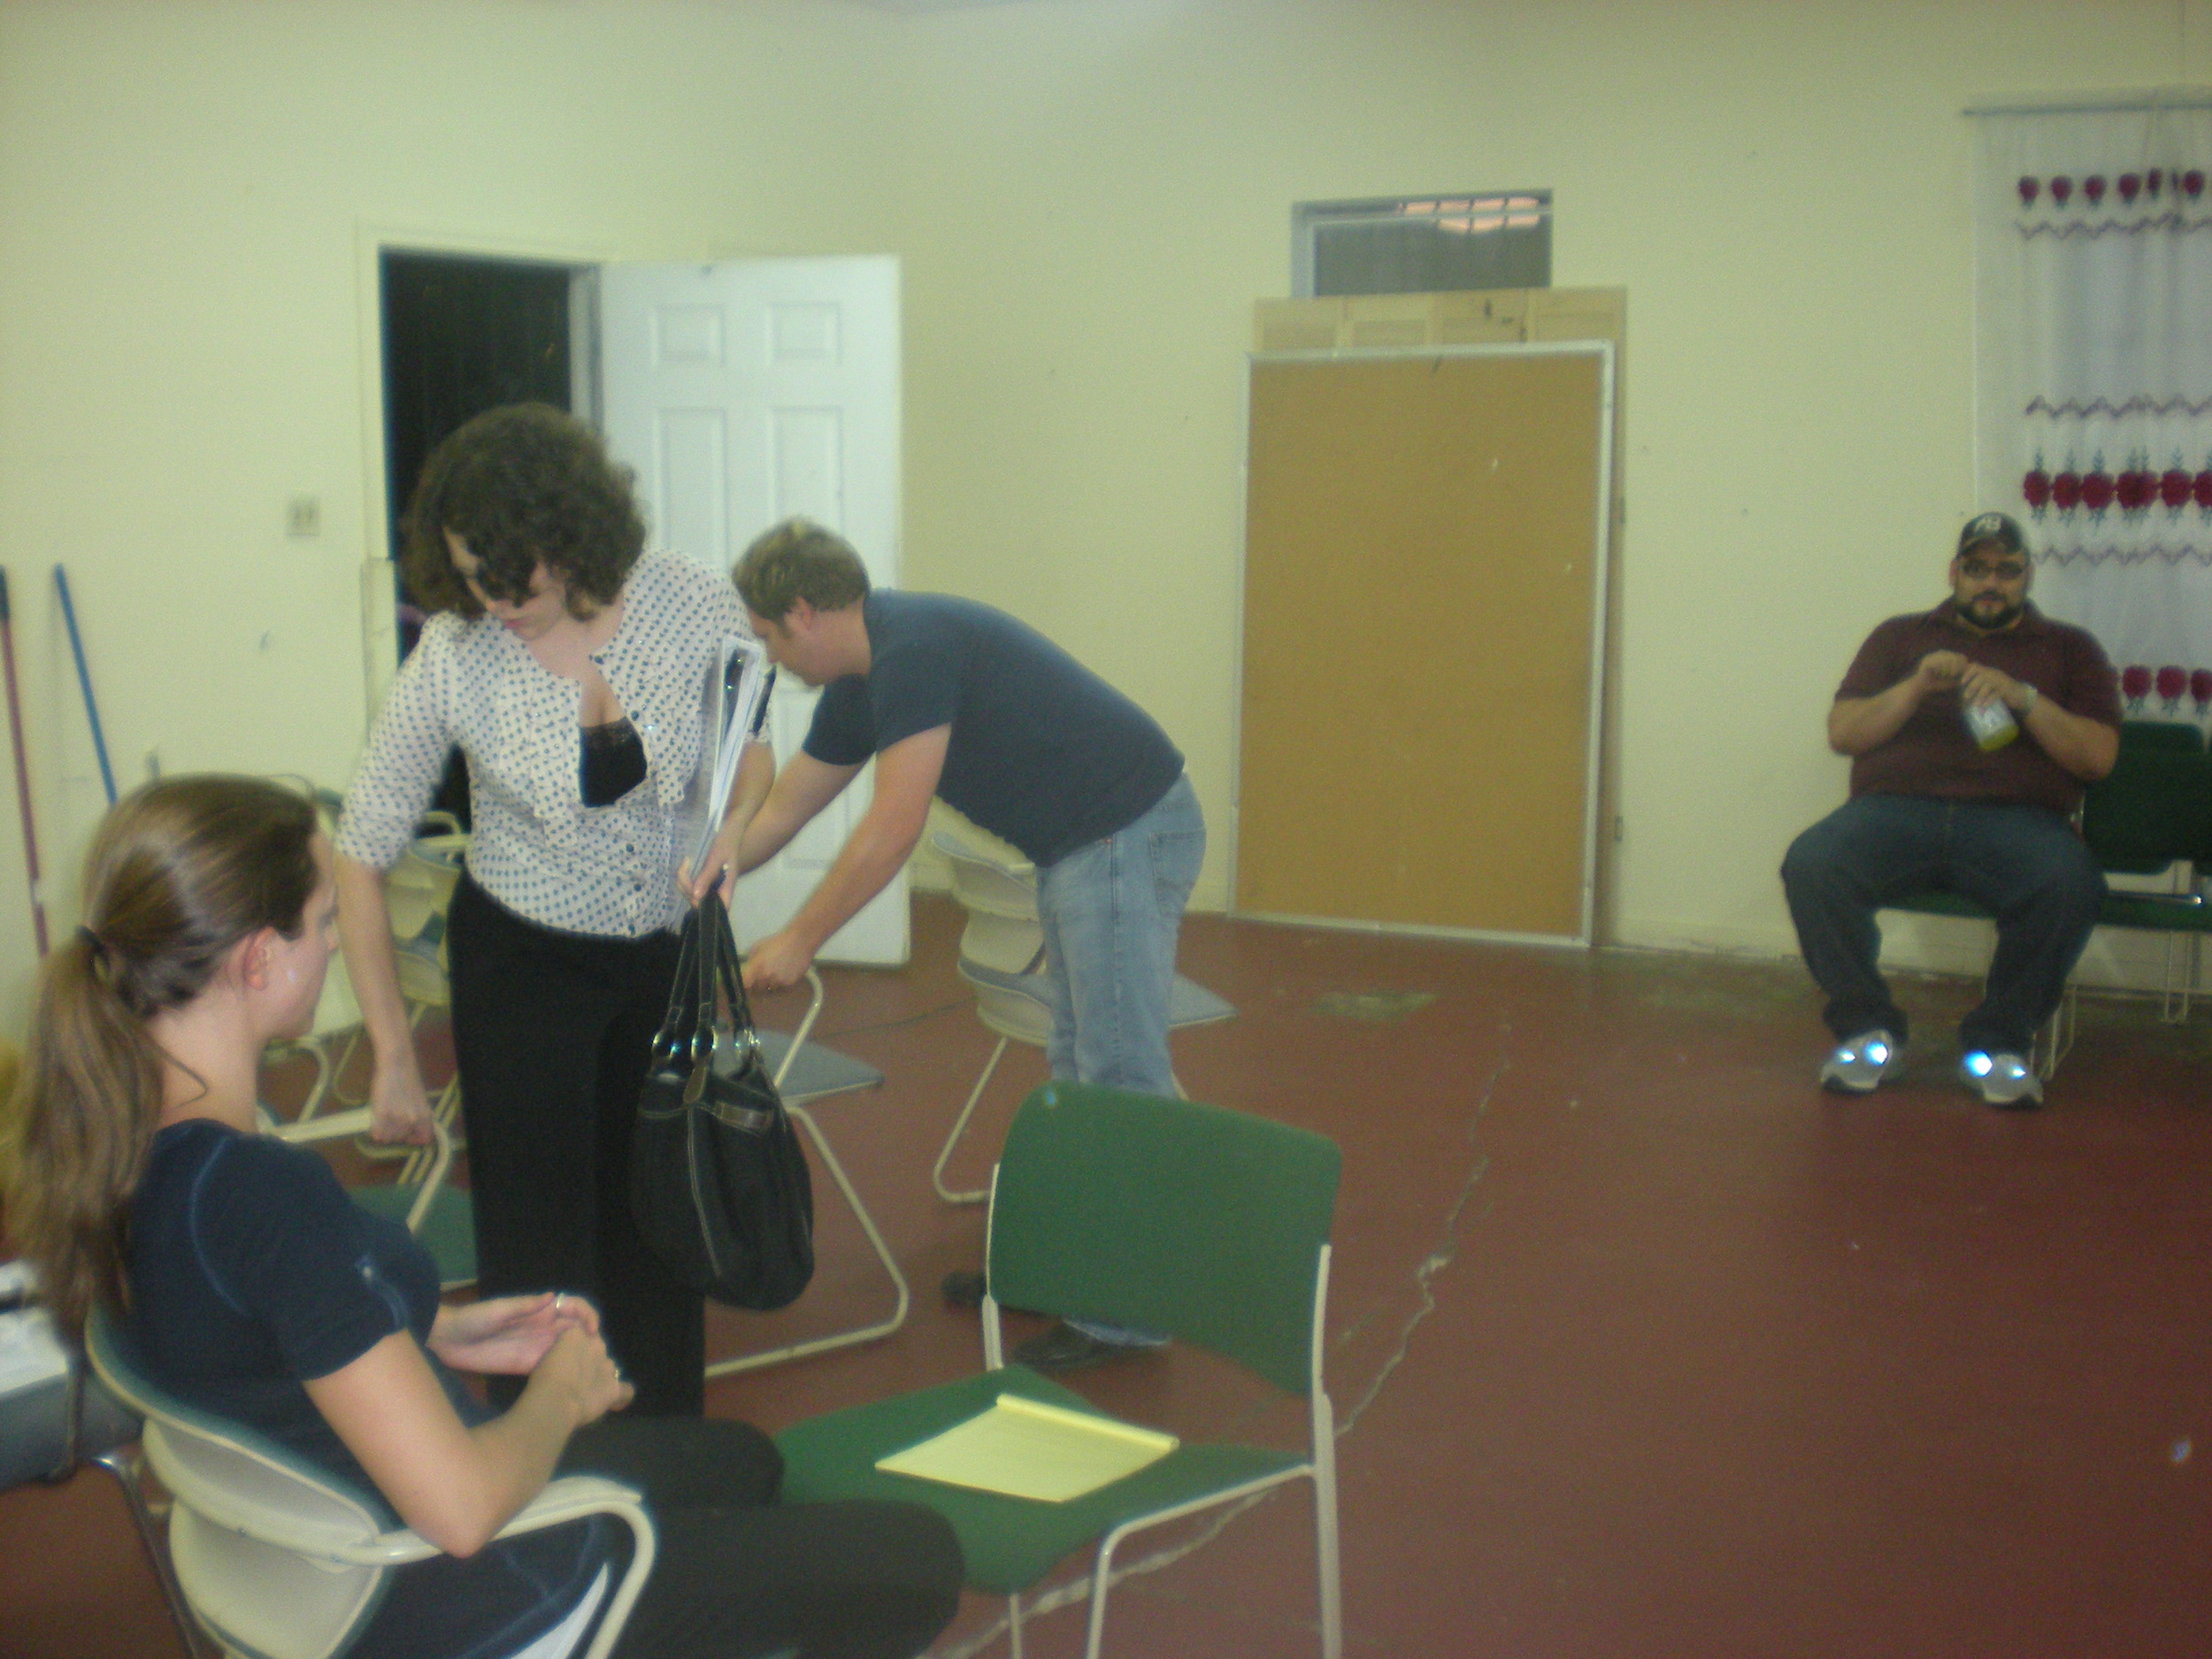 Images from Broken Gears Project Theatre Interview